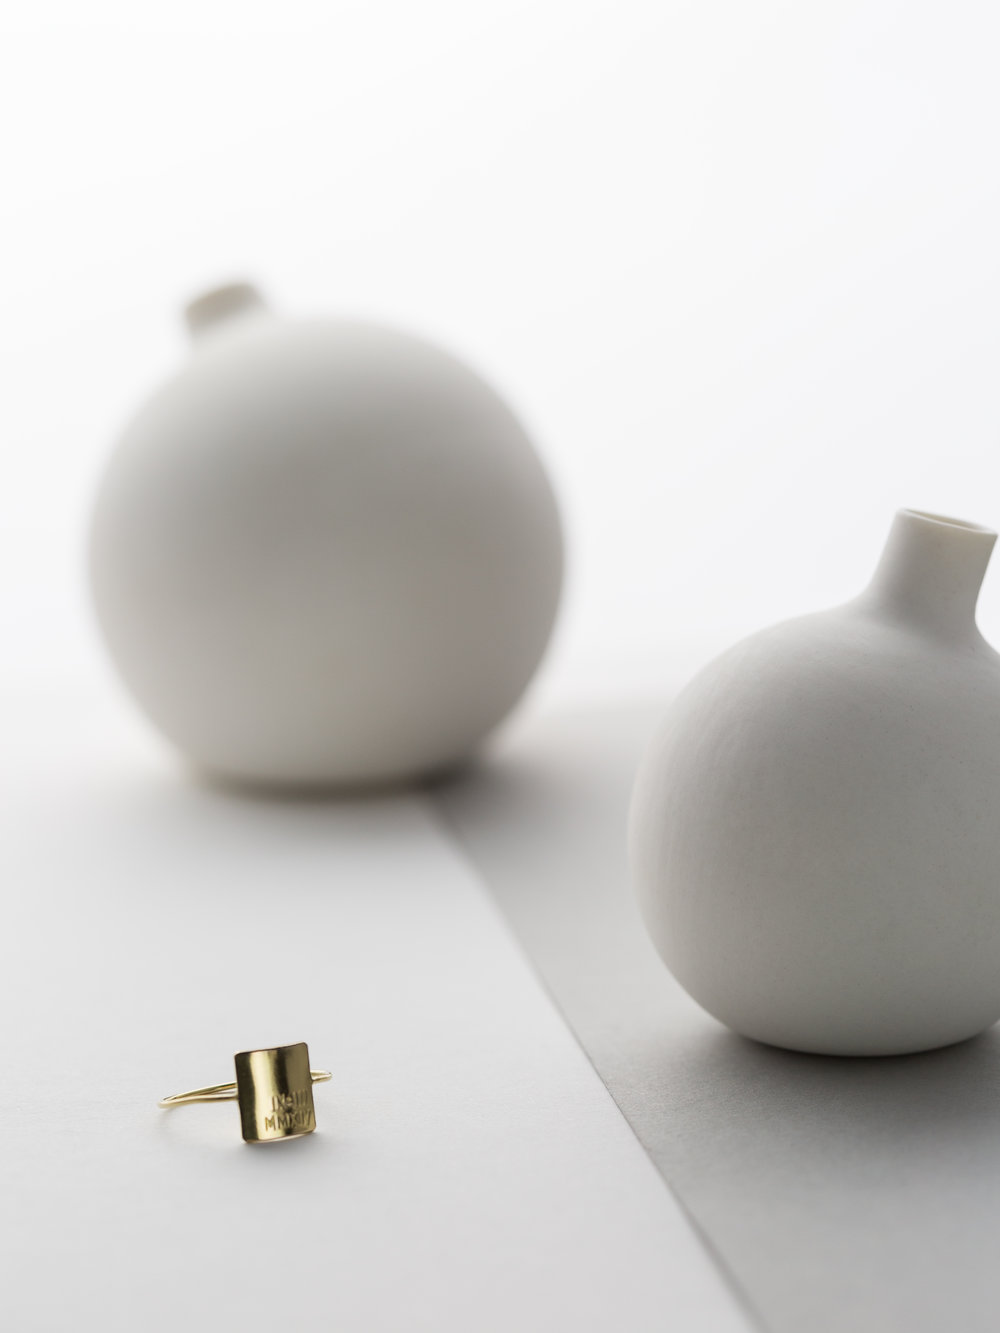 Porcelain Vessels: TOKYO CRAFT STUDIOS, Ring: YARRA, Personalized (coming soon)